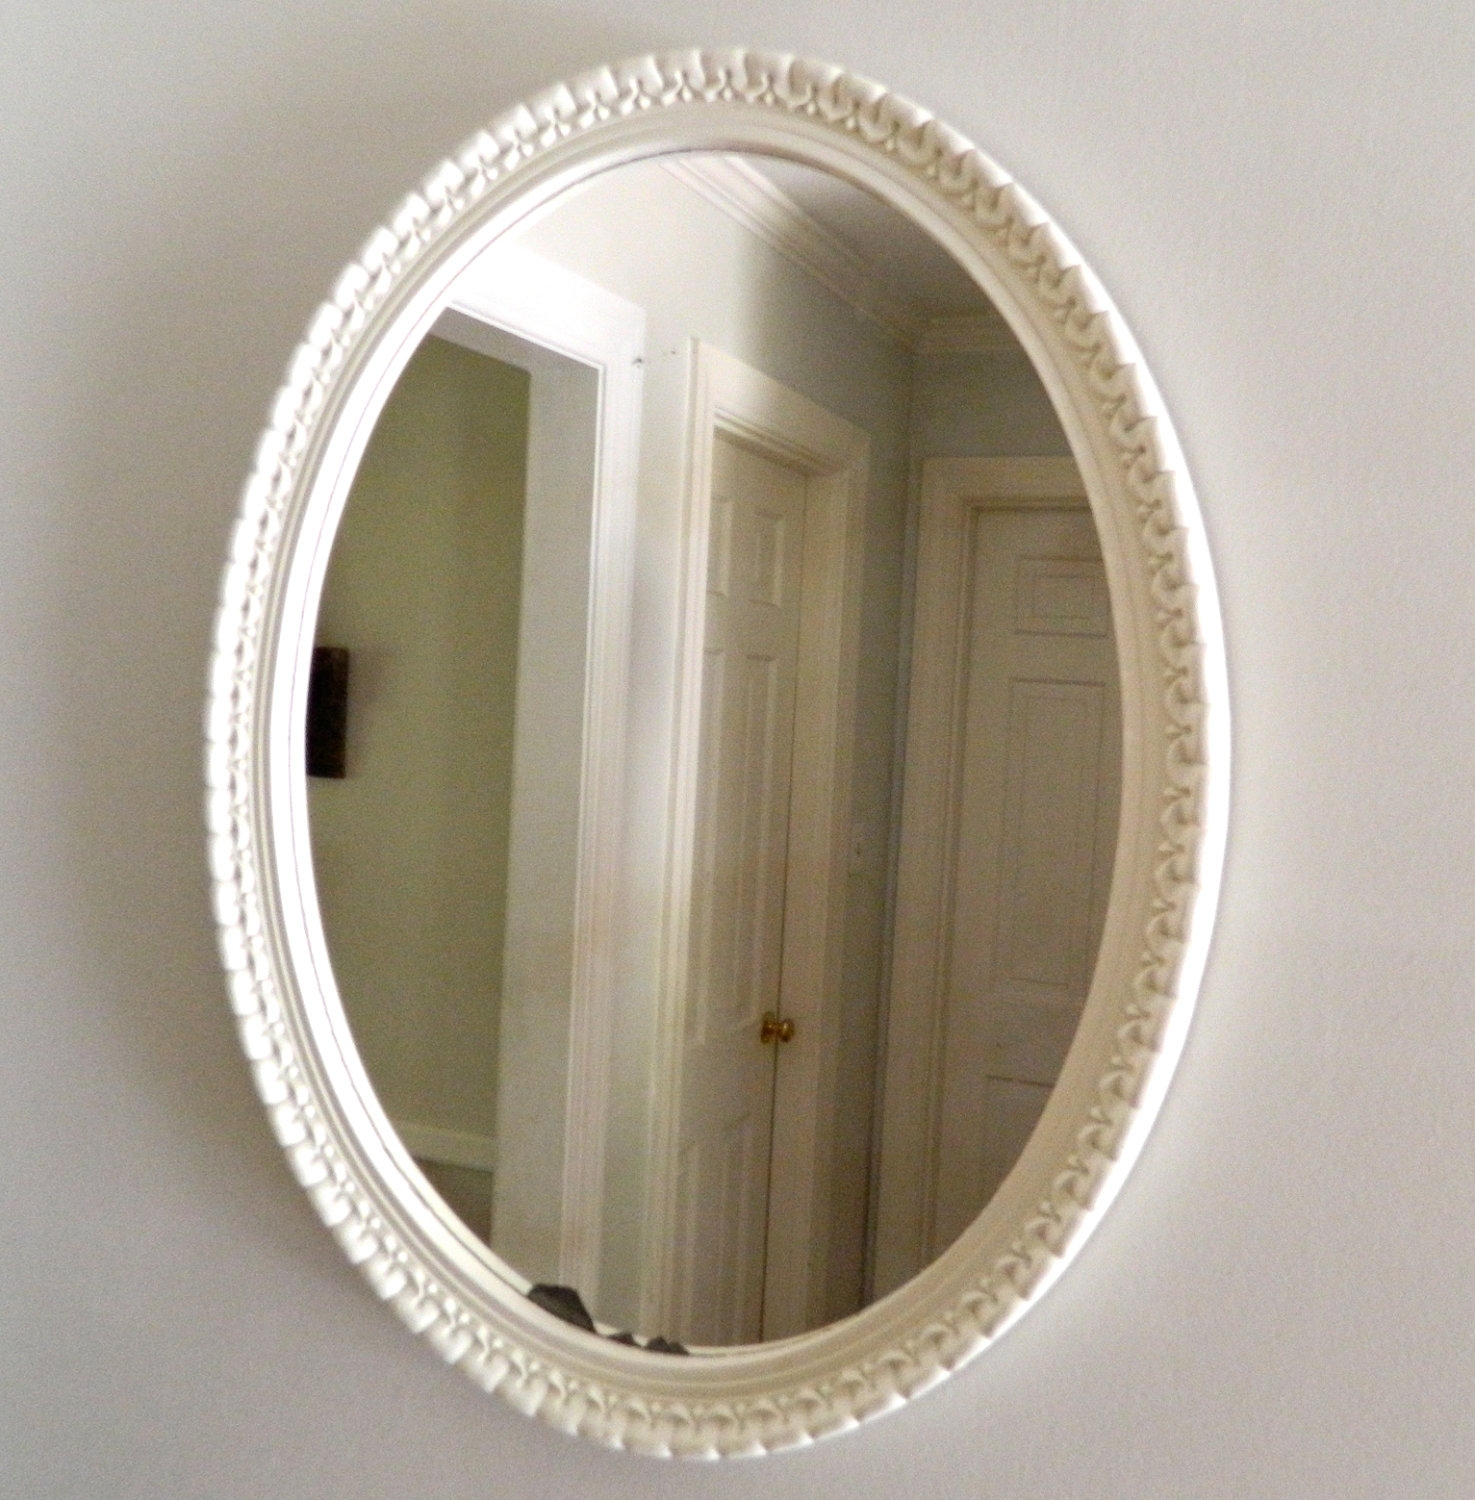 Vintage Mirror Oval White Shab Chic Wood Frame With Regard To White Oval Mirror (Image 11 of 15)